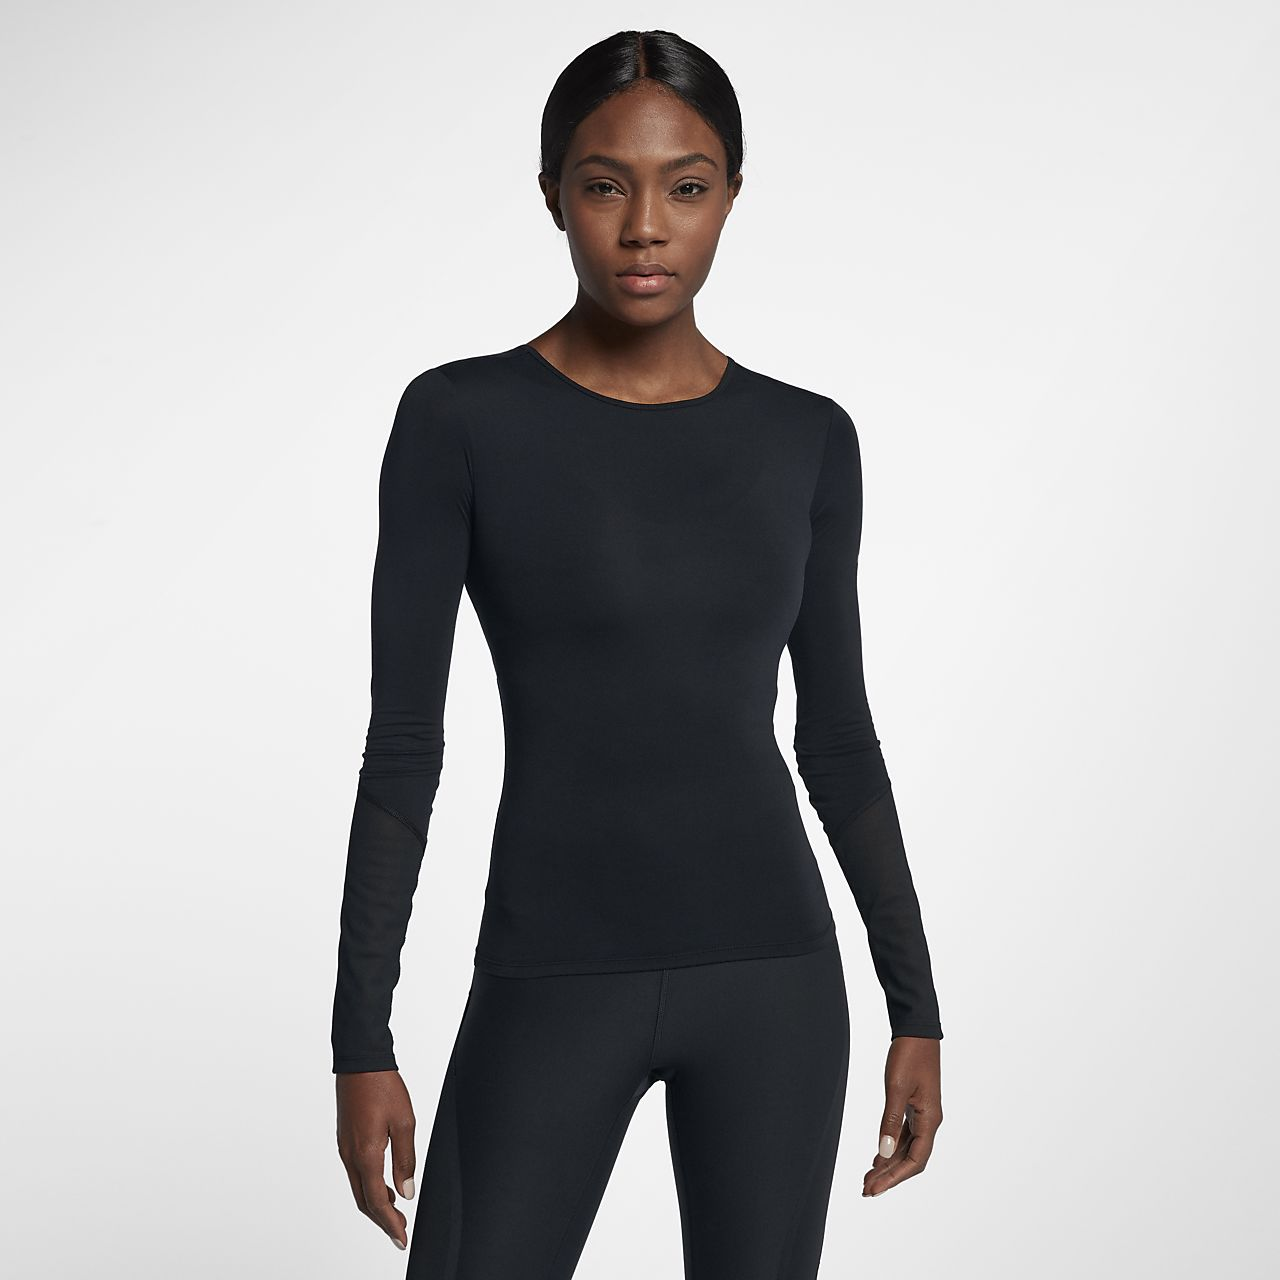 ... Nike Dri-FIT Women's Long Sleeve Training Top